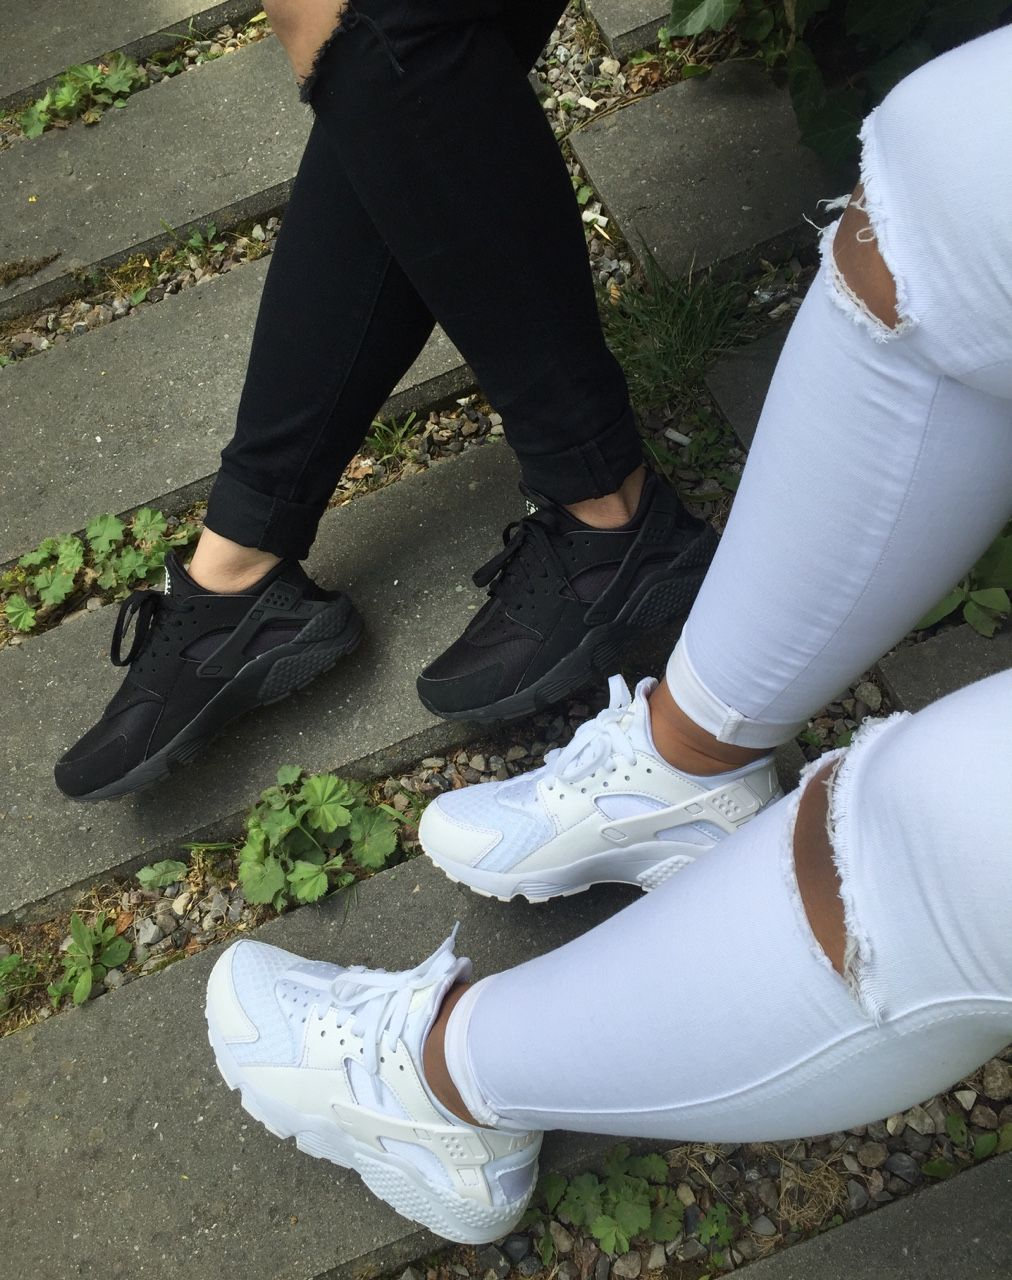 c06e045ad904 Squad Shit Squad Goals Matching Footwear Trainers Nike Air Huaraches Triple  White Triple Black Dope Urban Streetwear Swag